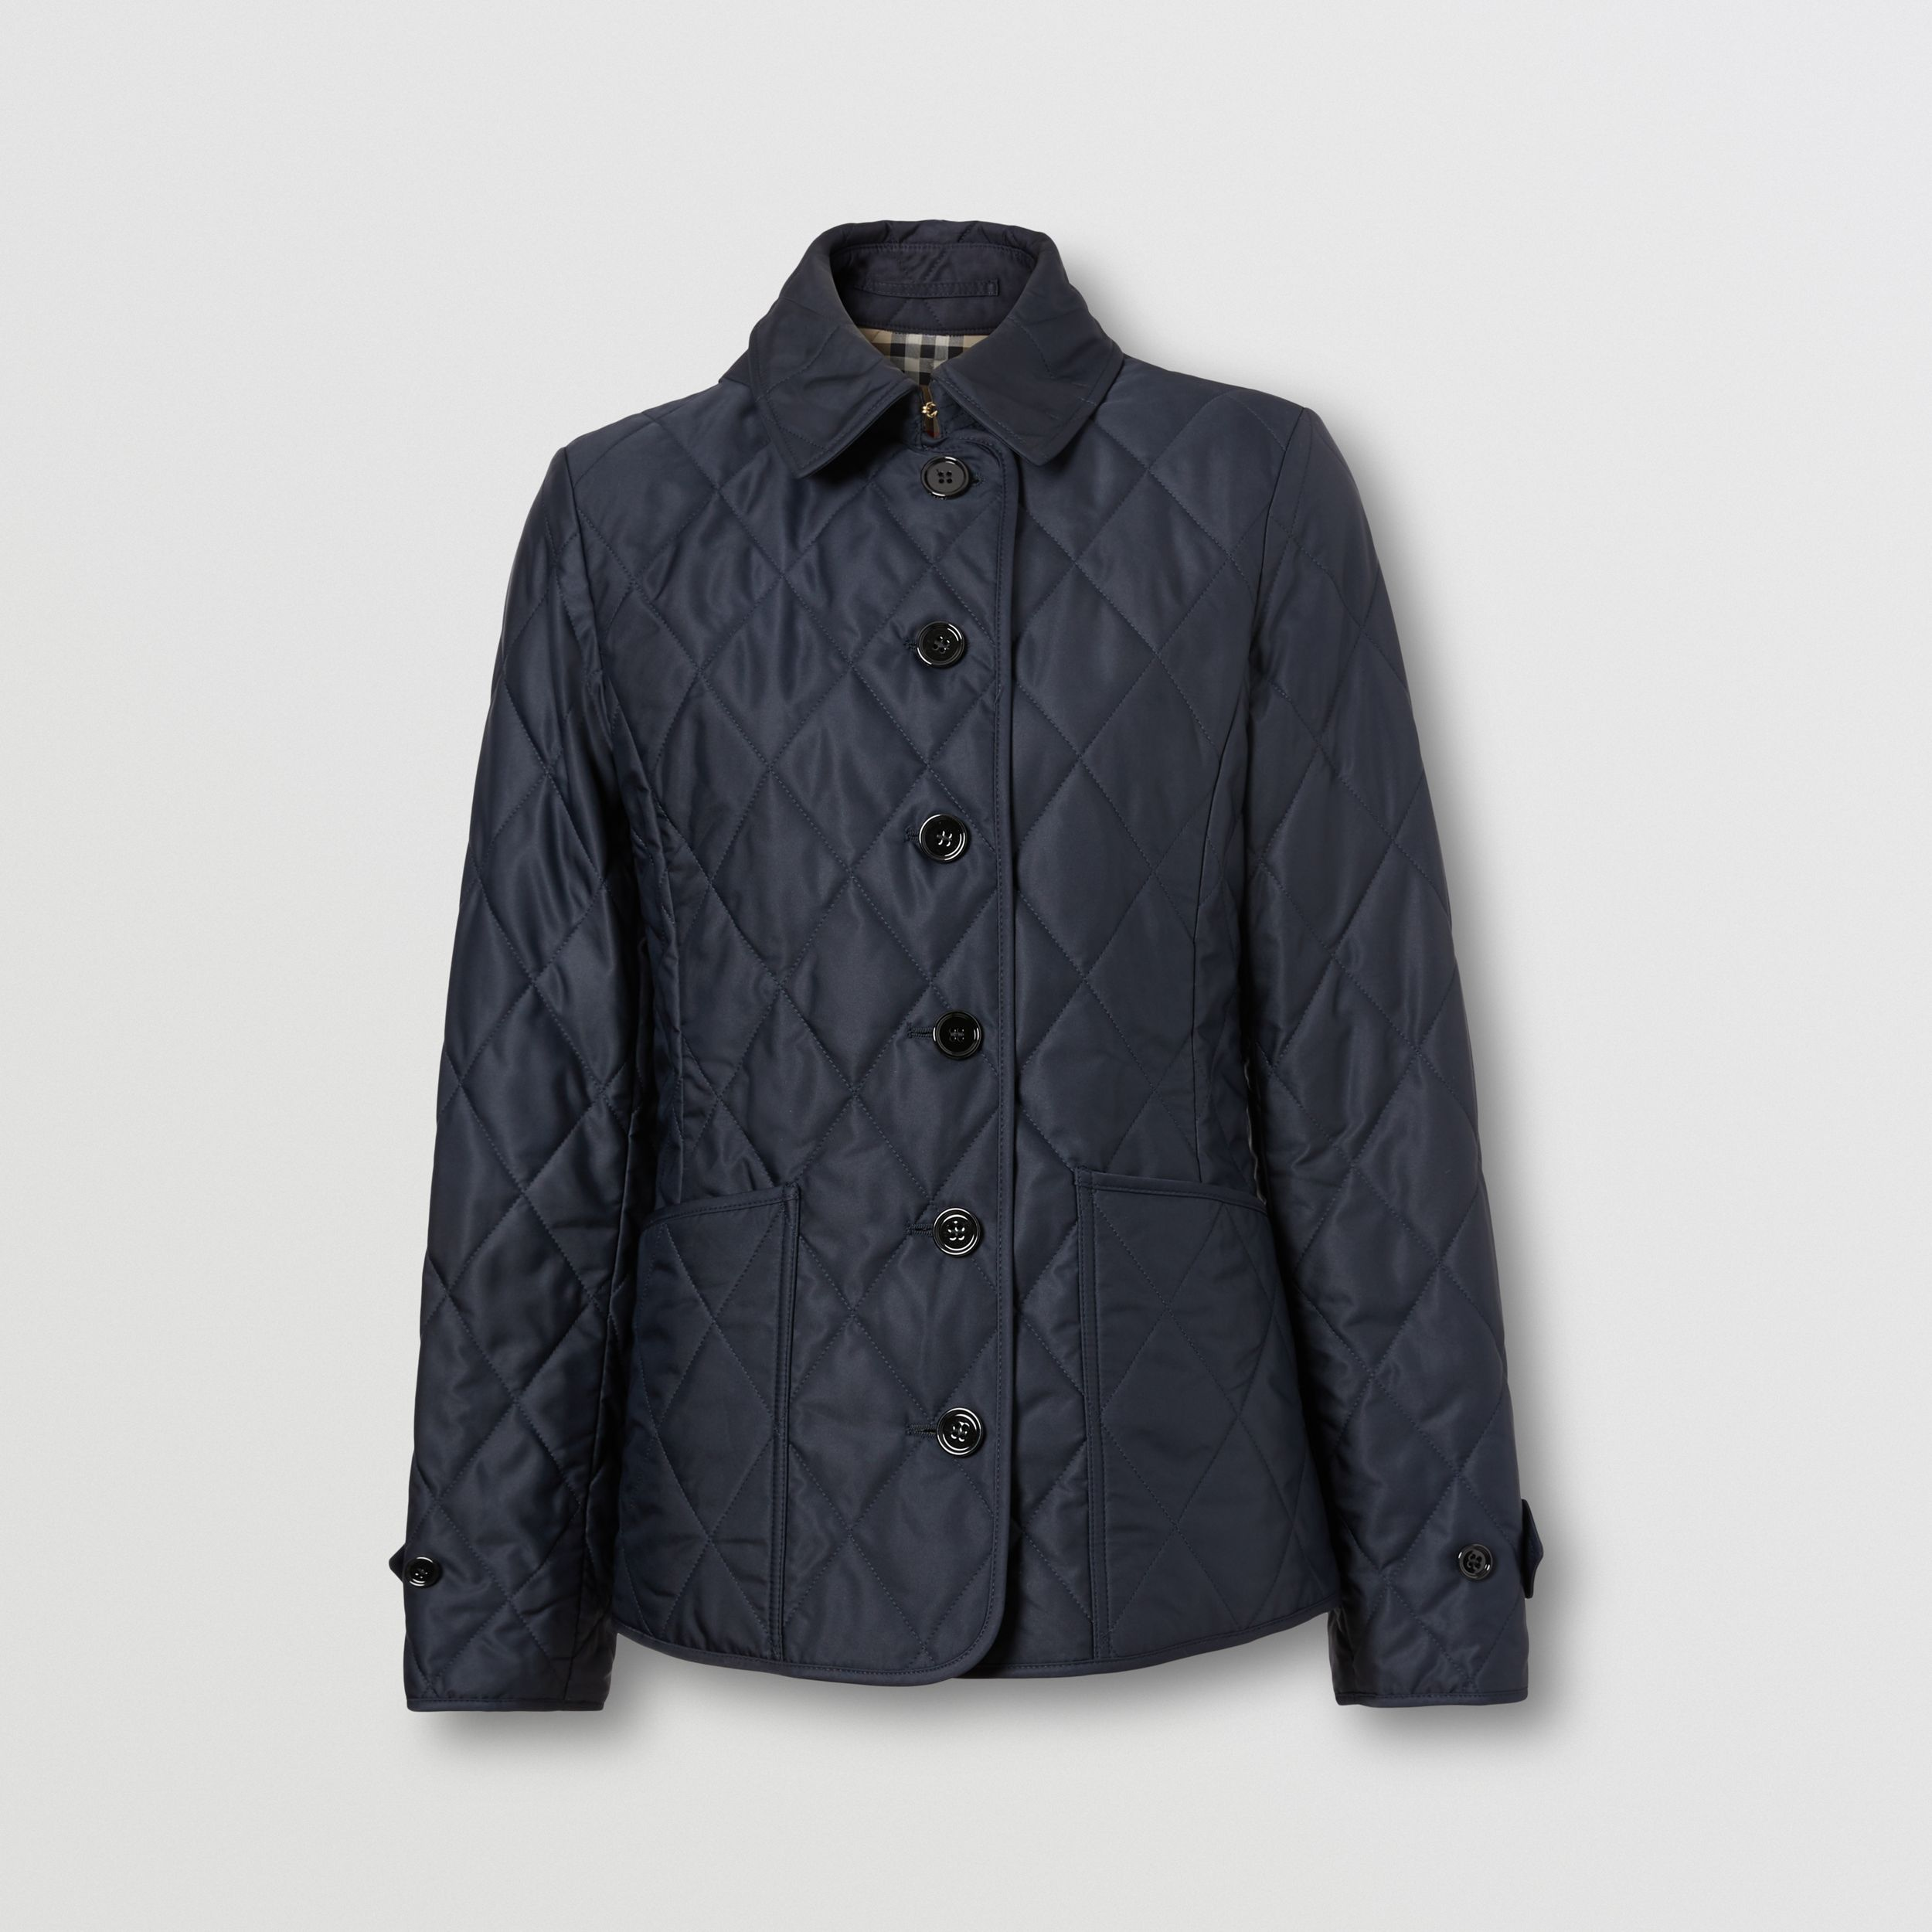 Diamond Quilted Thermoregulated Jacket in Midnight - Women | Burberry - 4